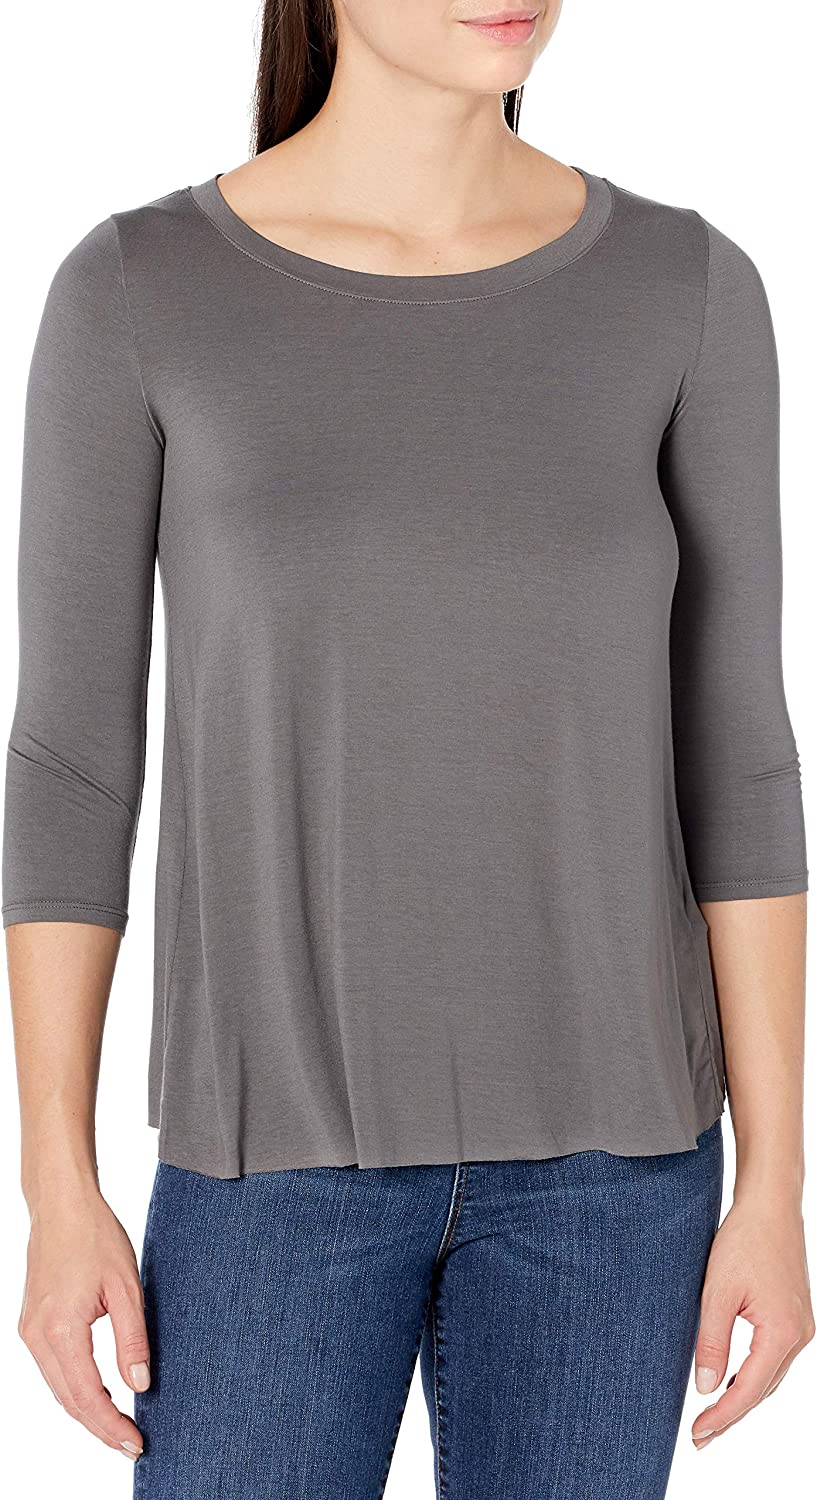 Details about  /Three Dots Women/'s Deep V Neck 3//4 Sleeve Tee Choose SZ//color